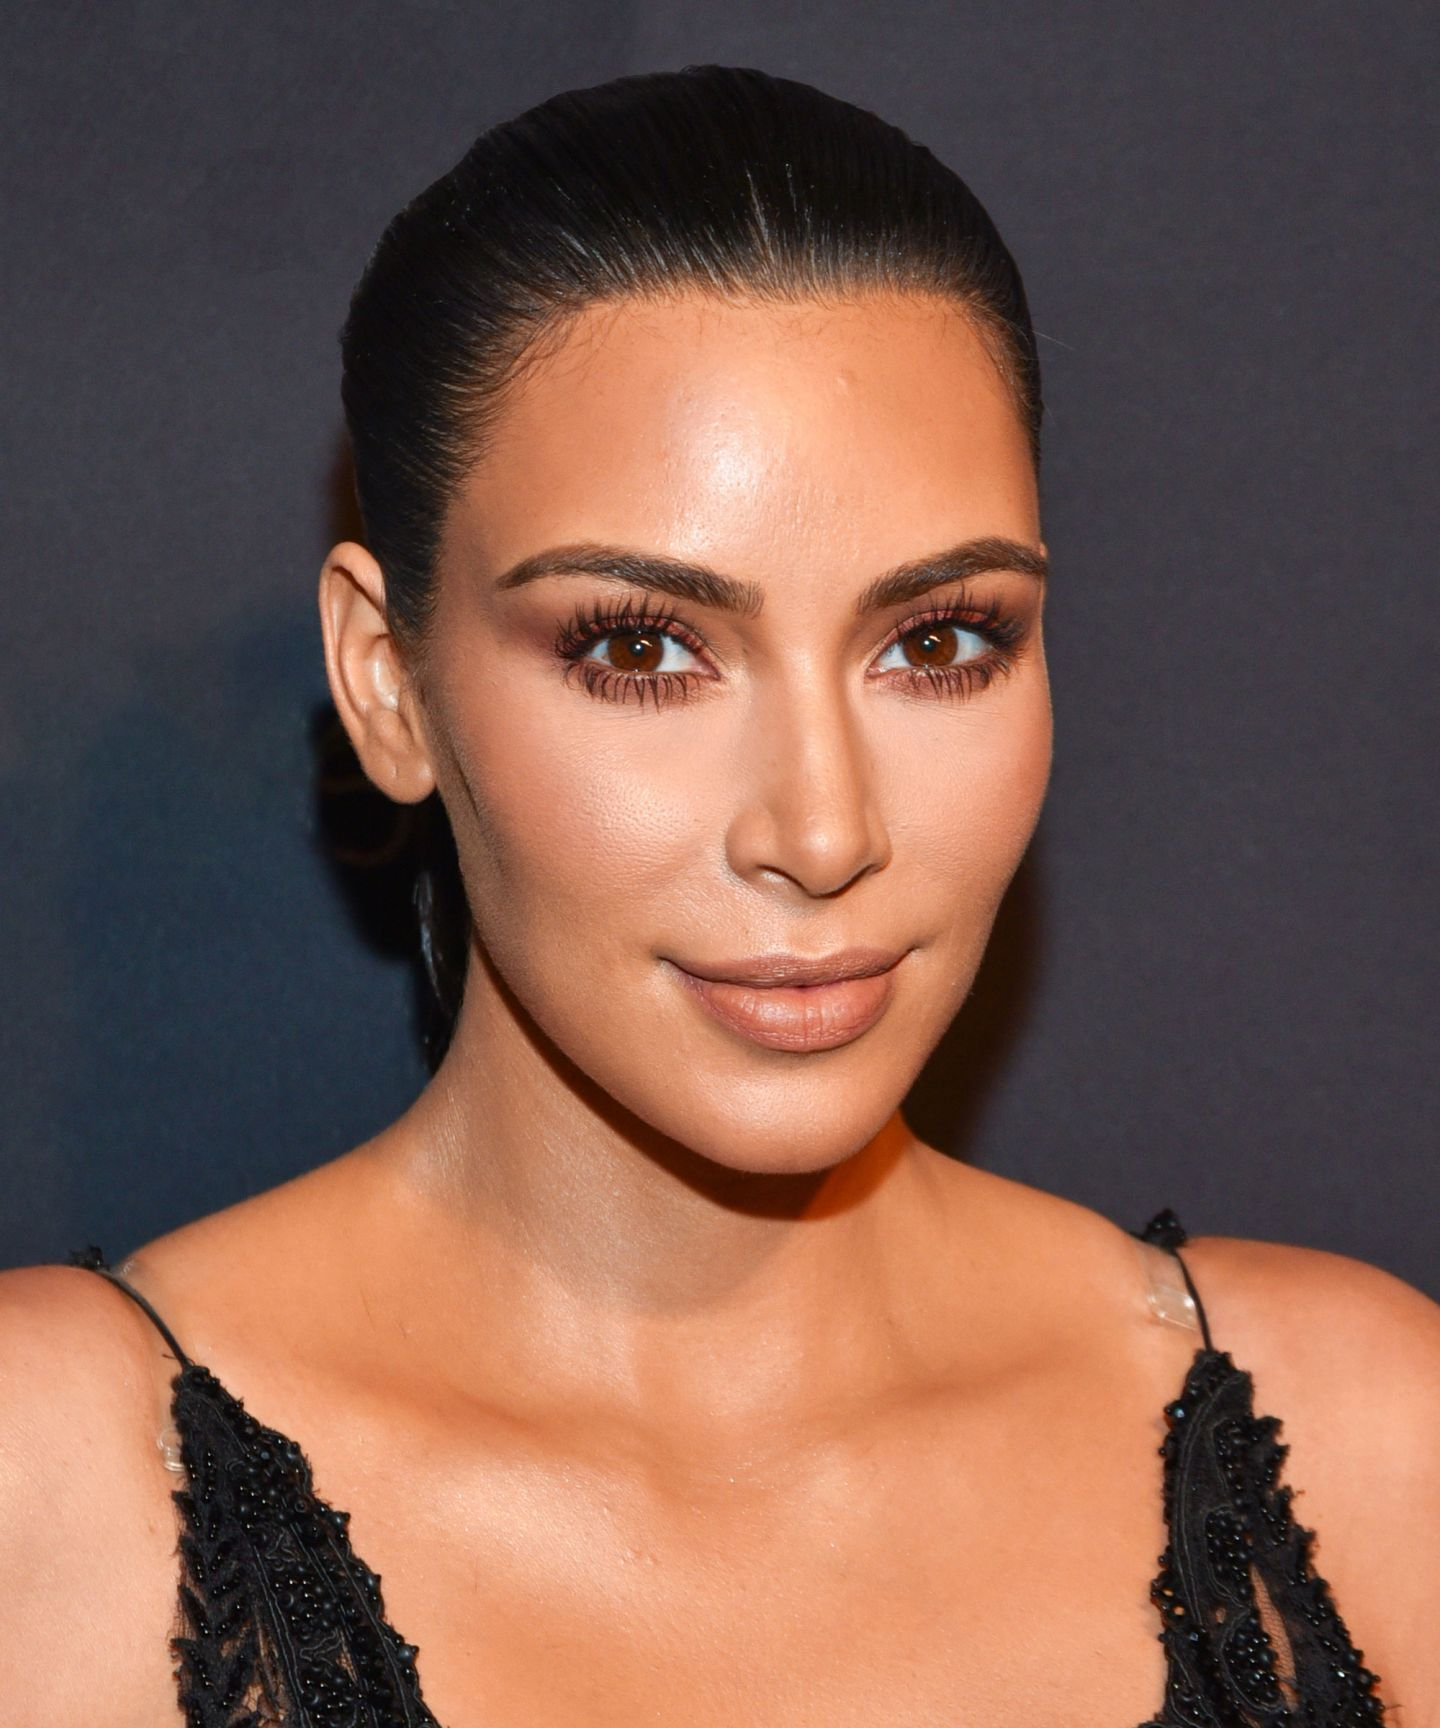 bcdf6f1145c This Is Why Kim Kardashian's Makeup Always Looks So Good | Makeup ...